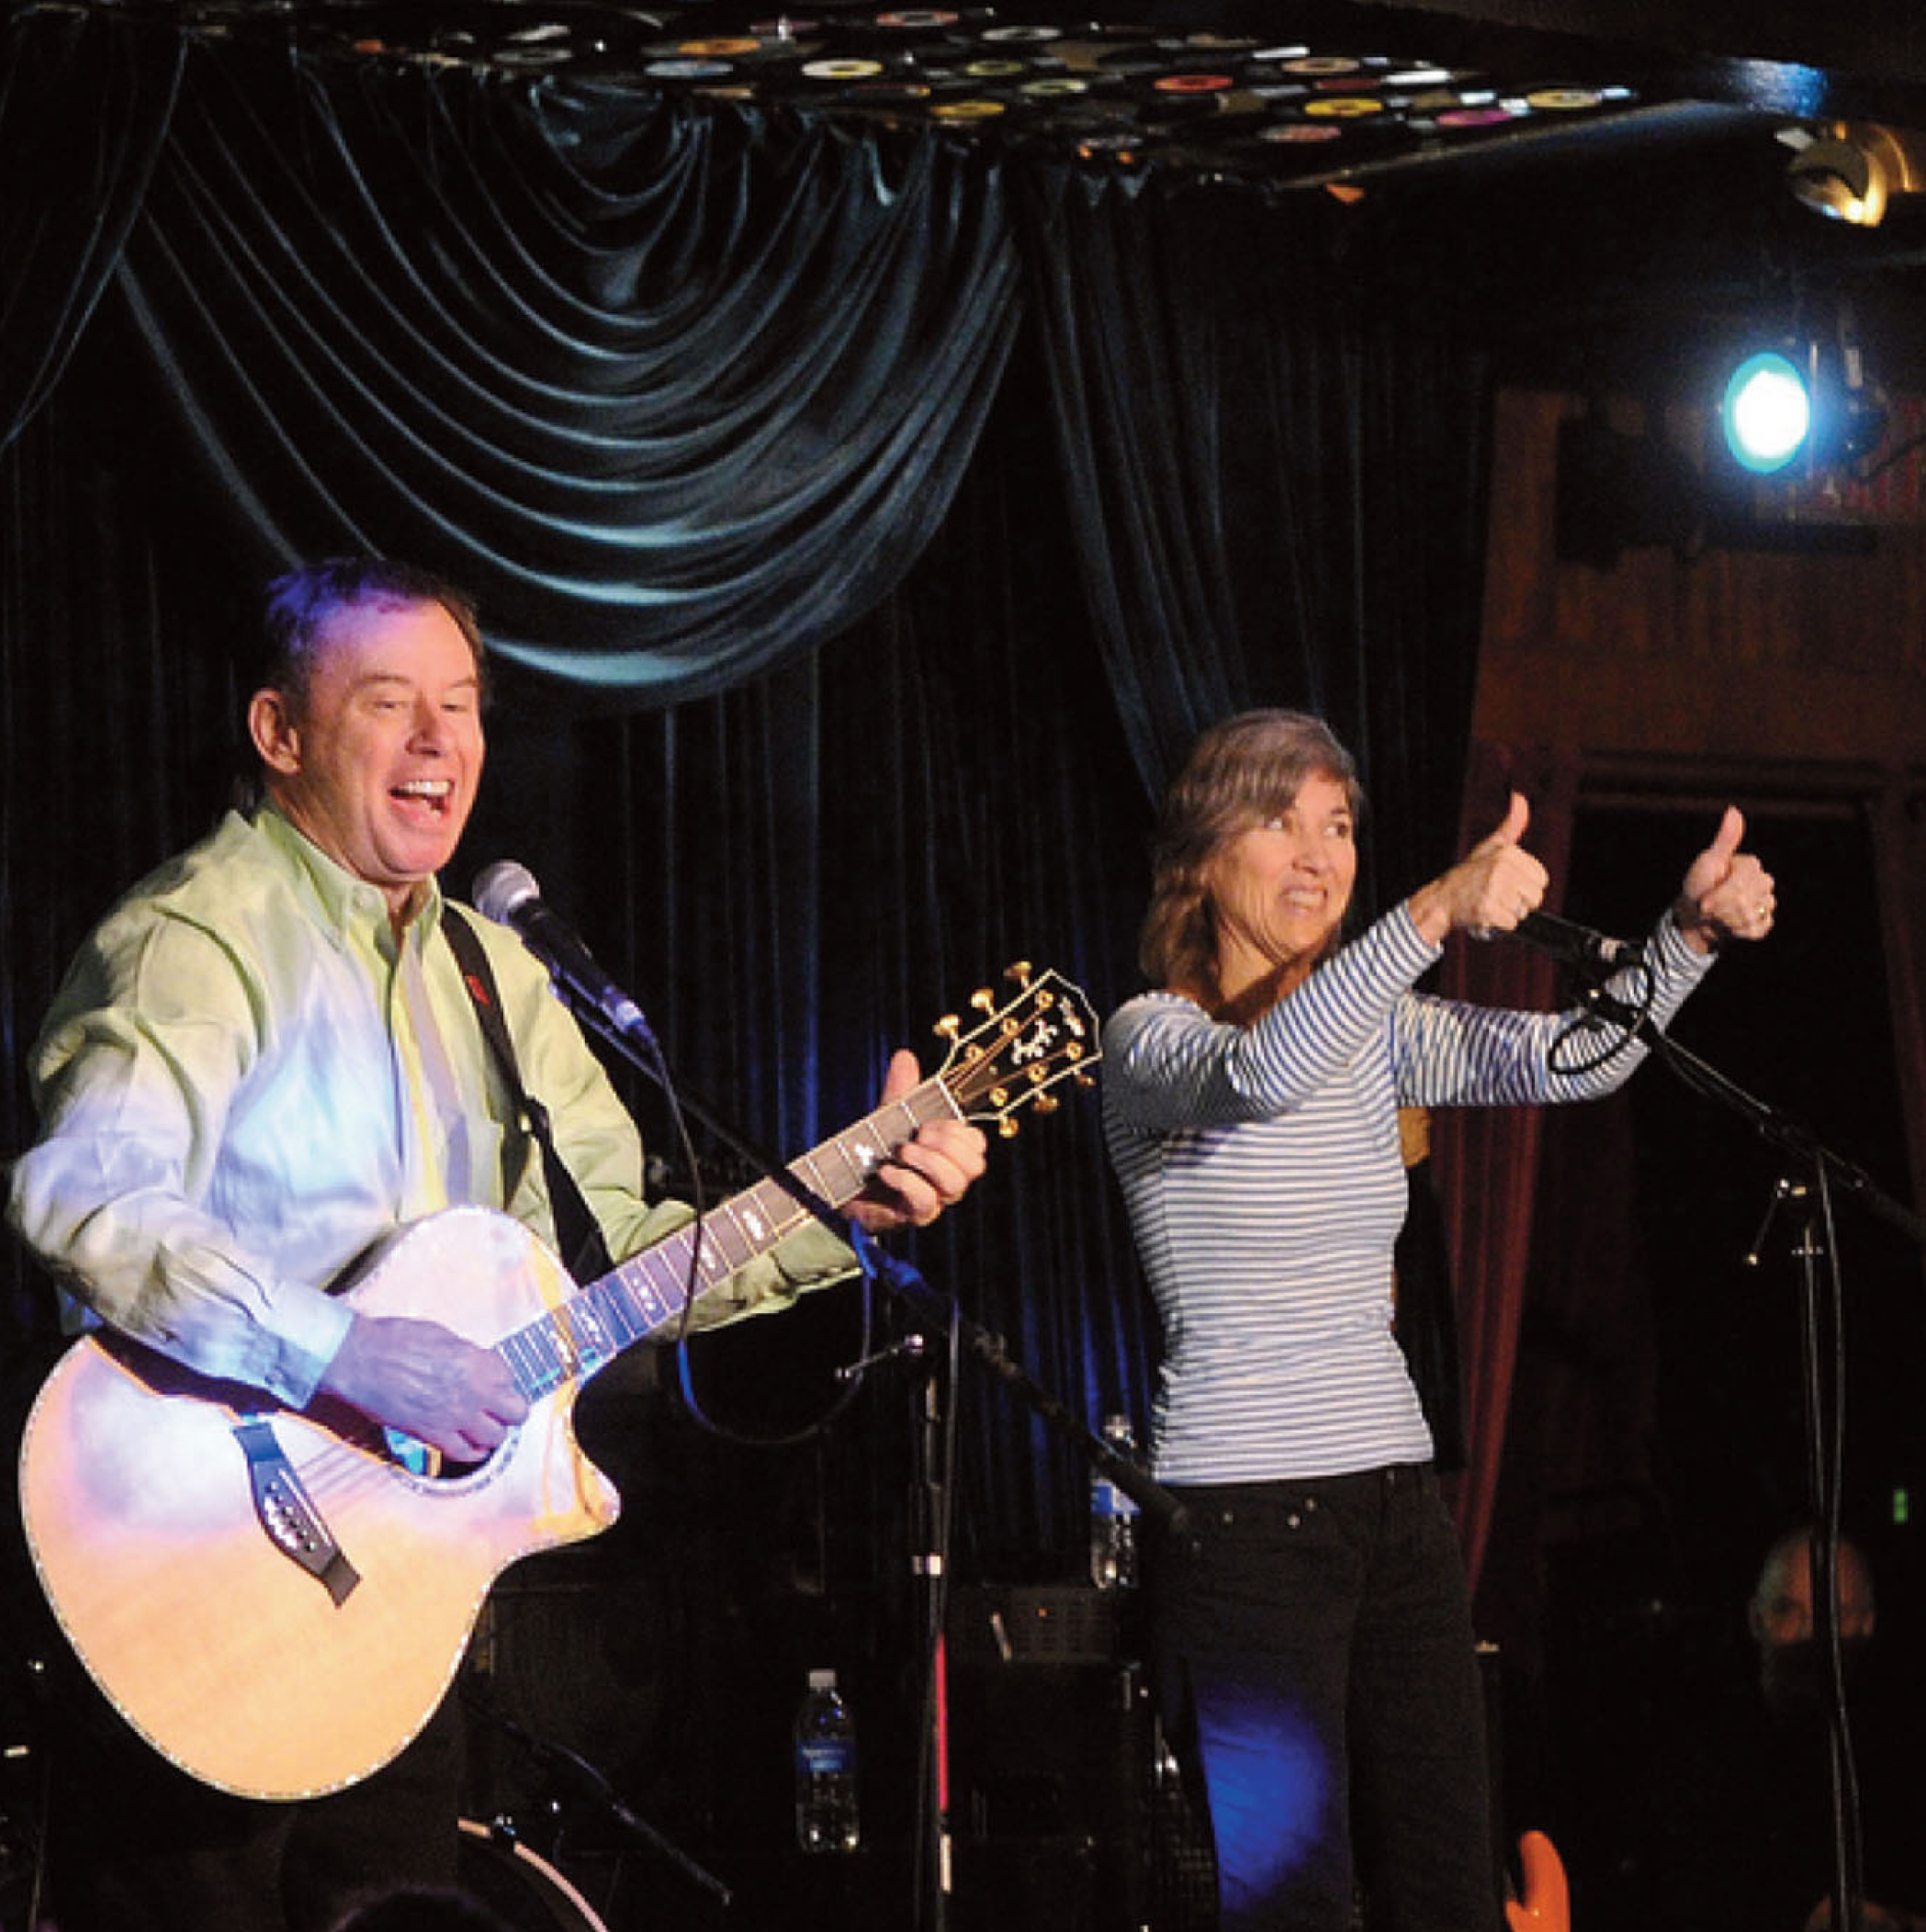 The BatDuo performing at The Mint